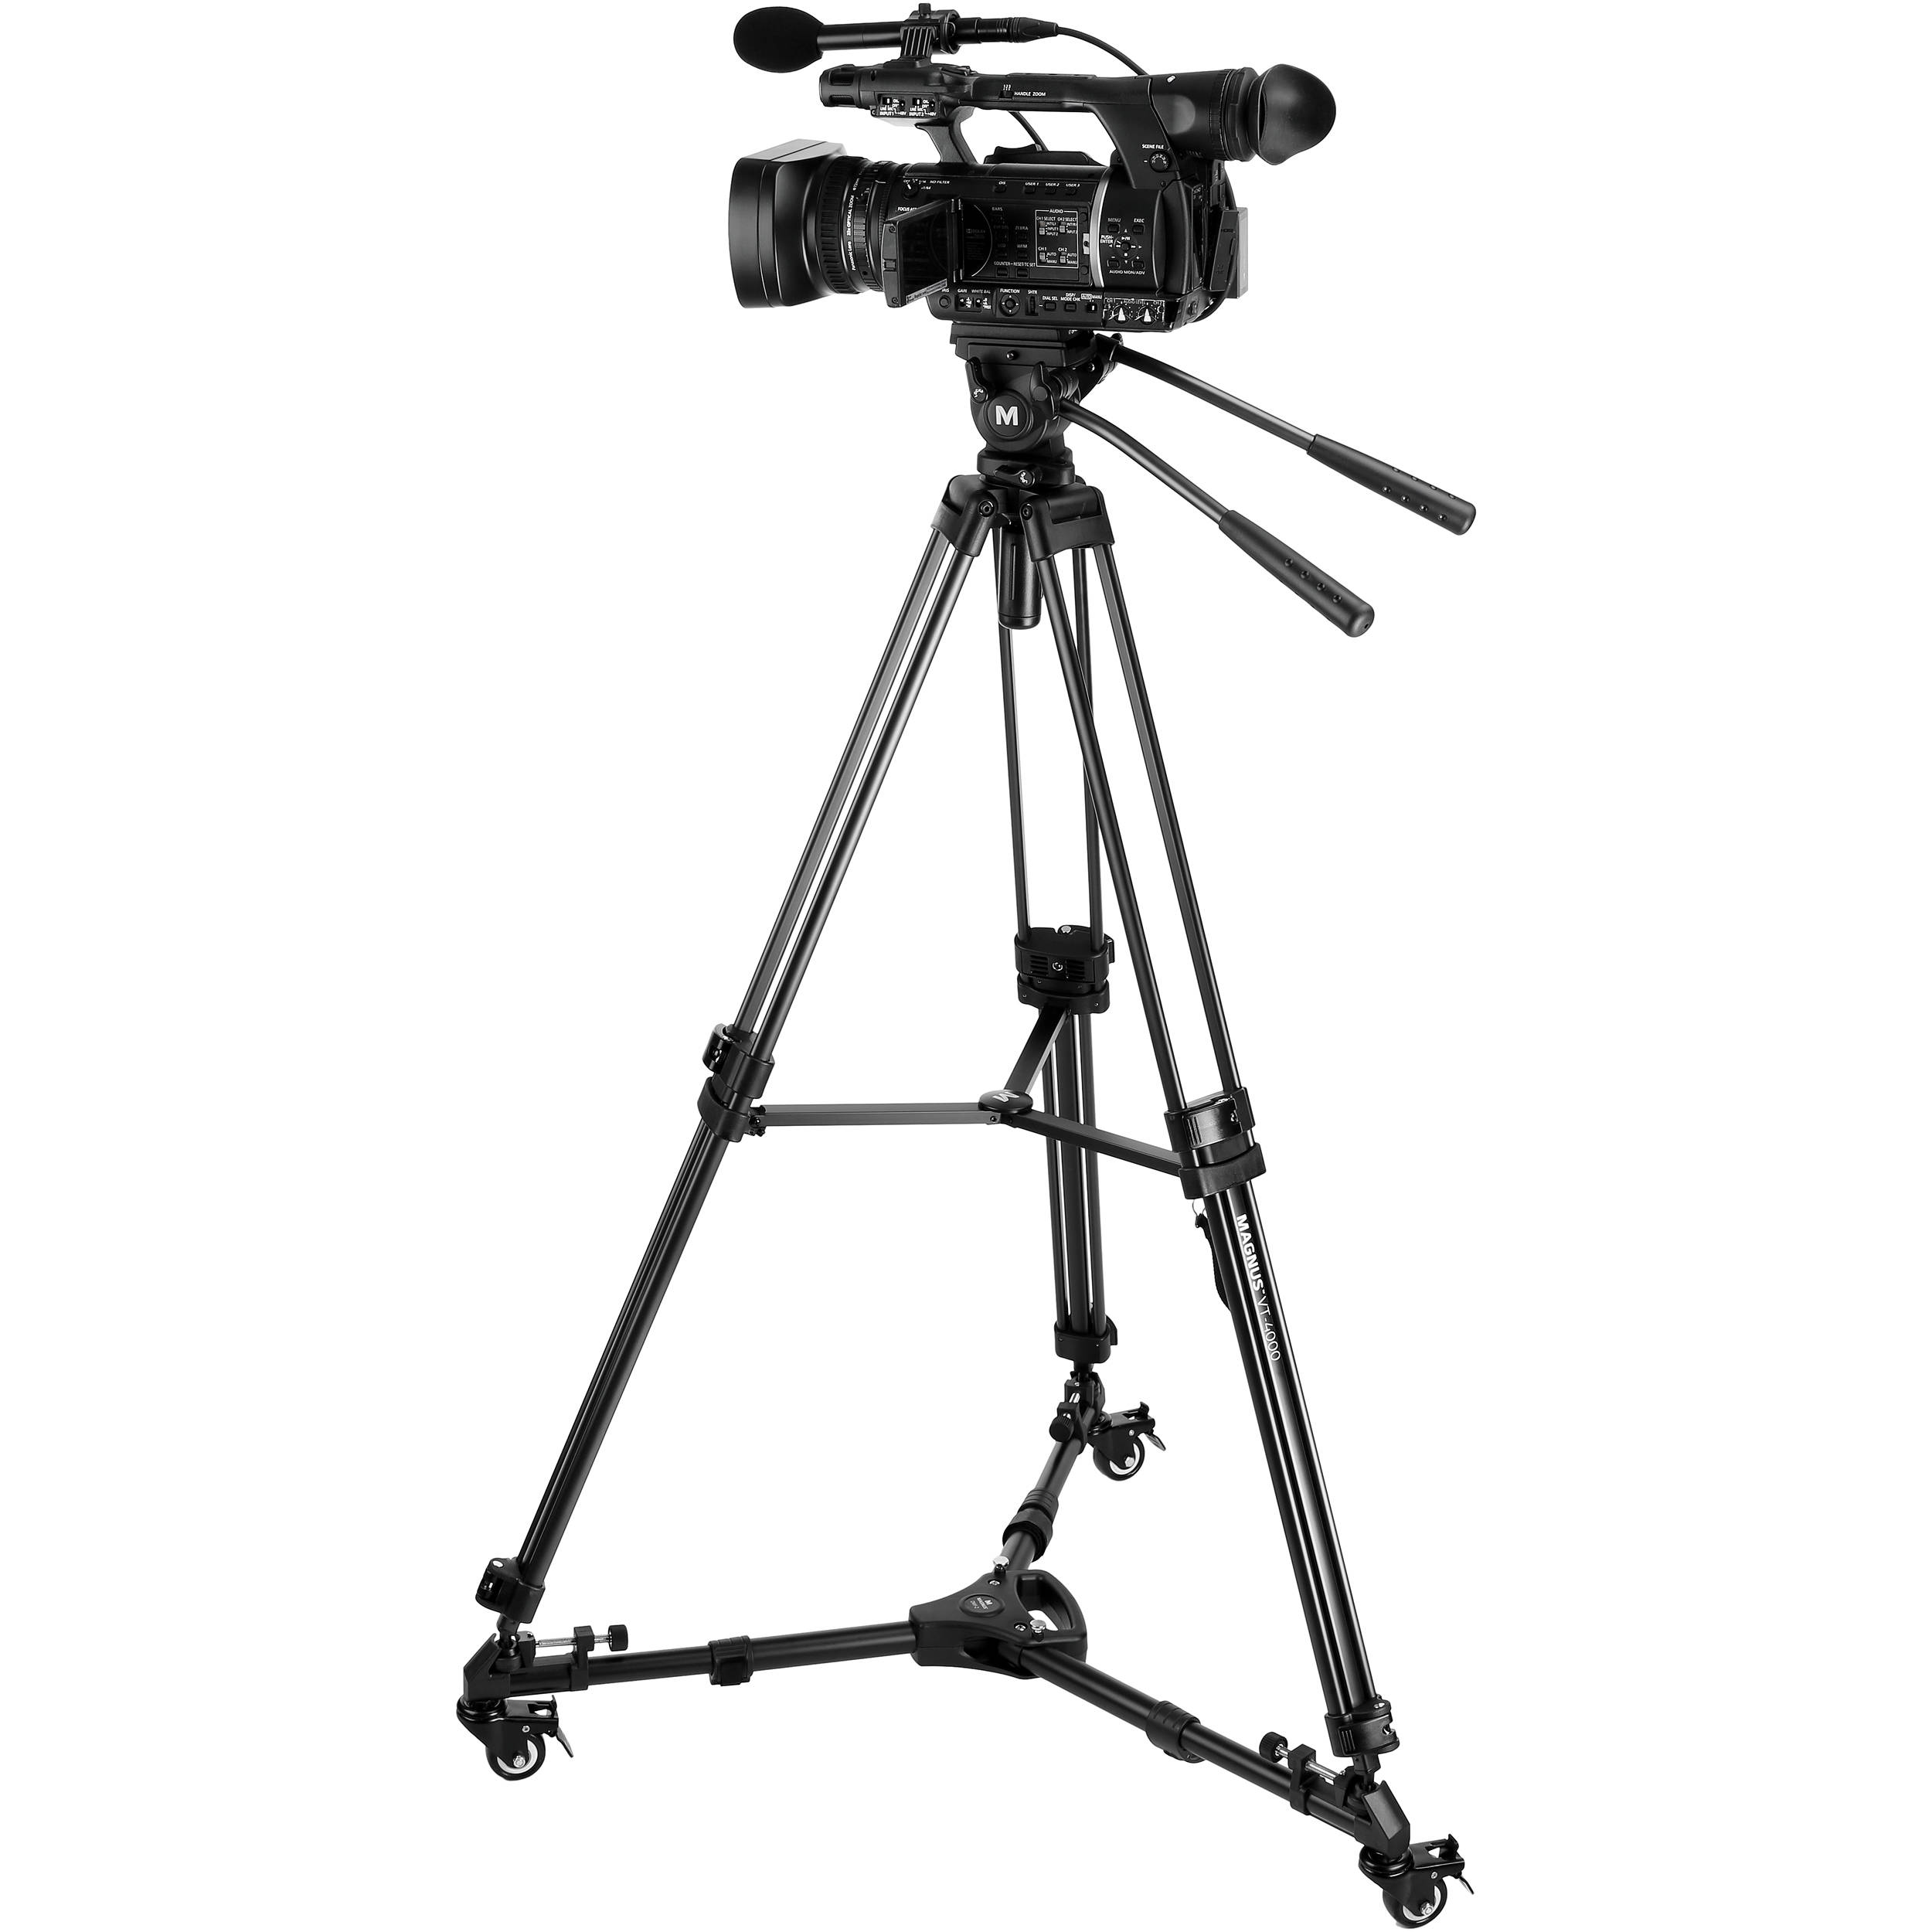 Magnus VT-4000 Tripod System Kit with Fluid Video VT-4000